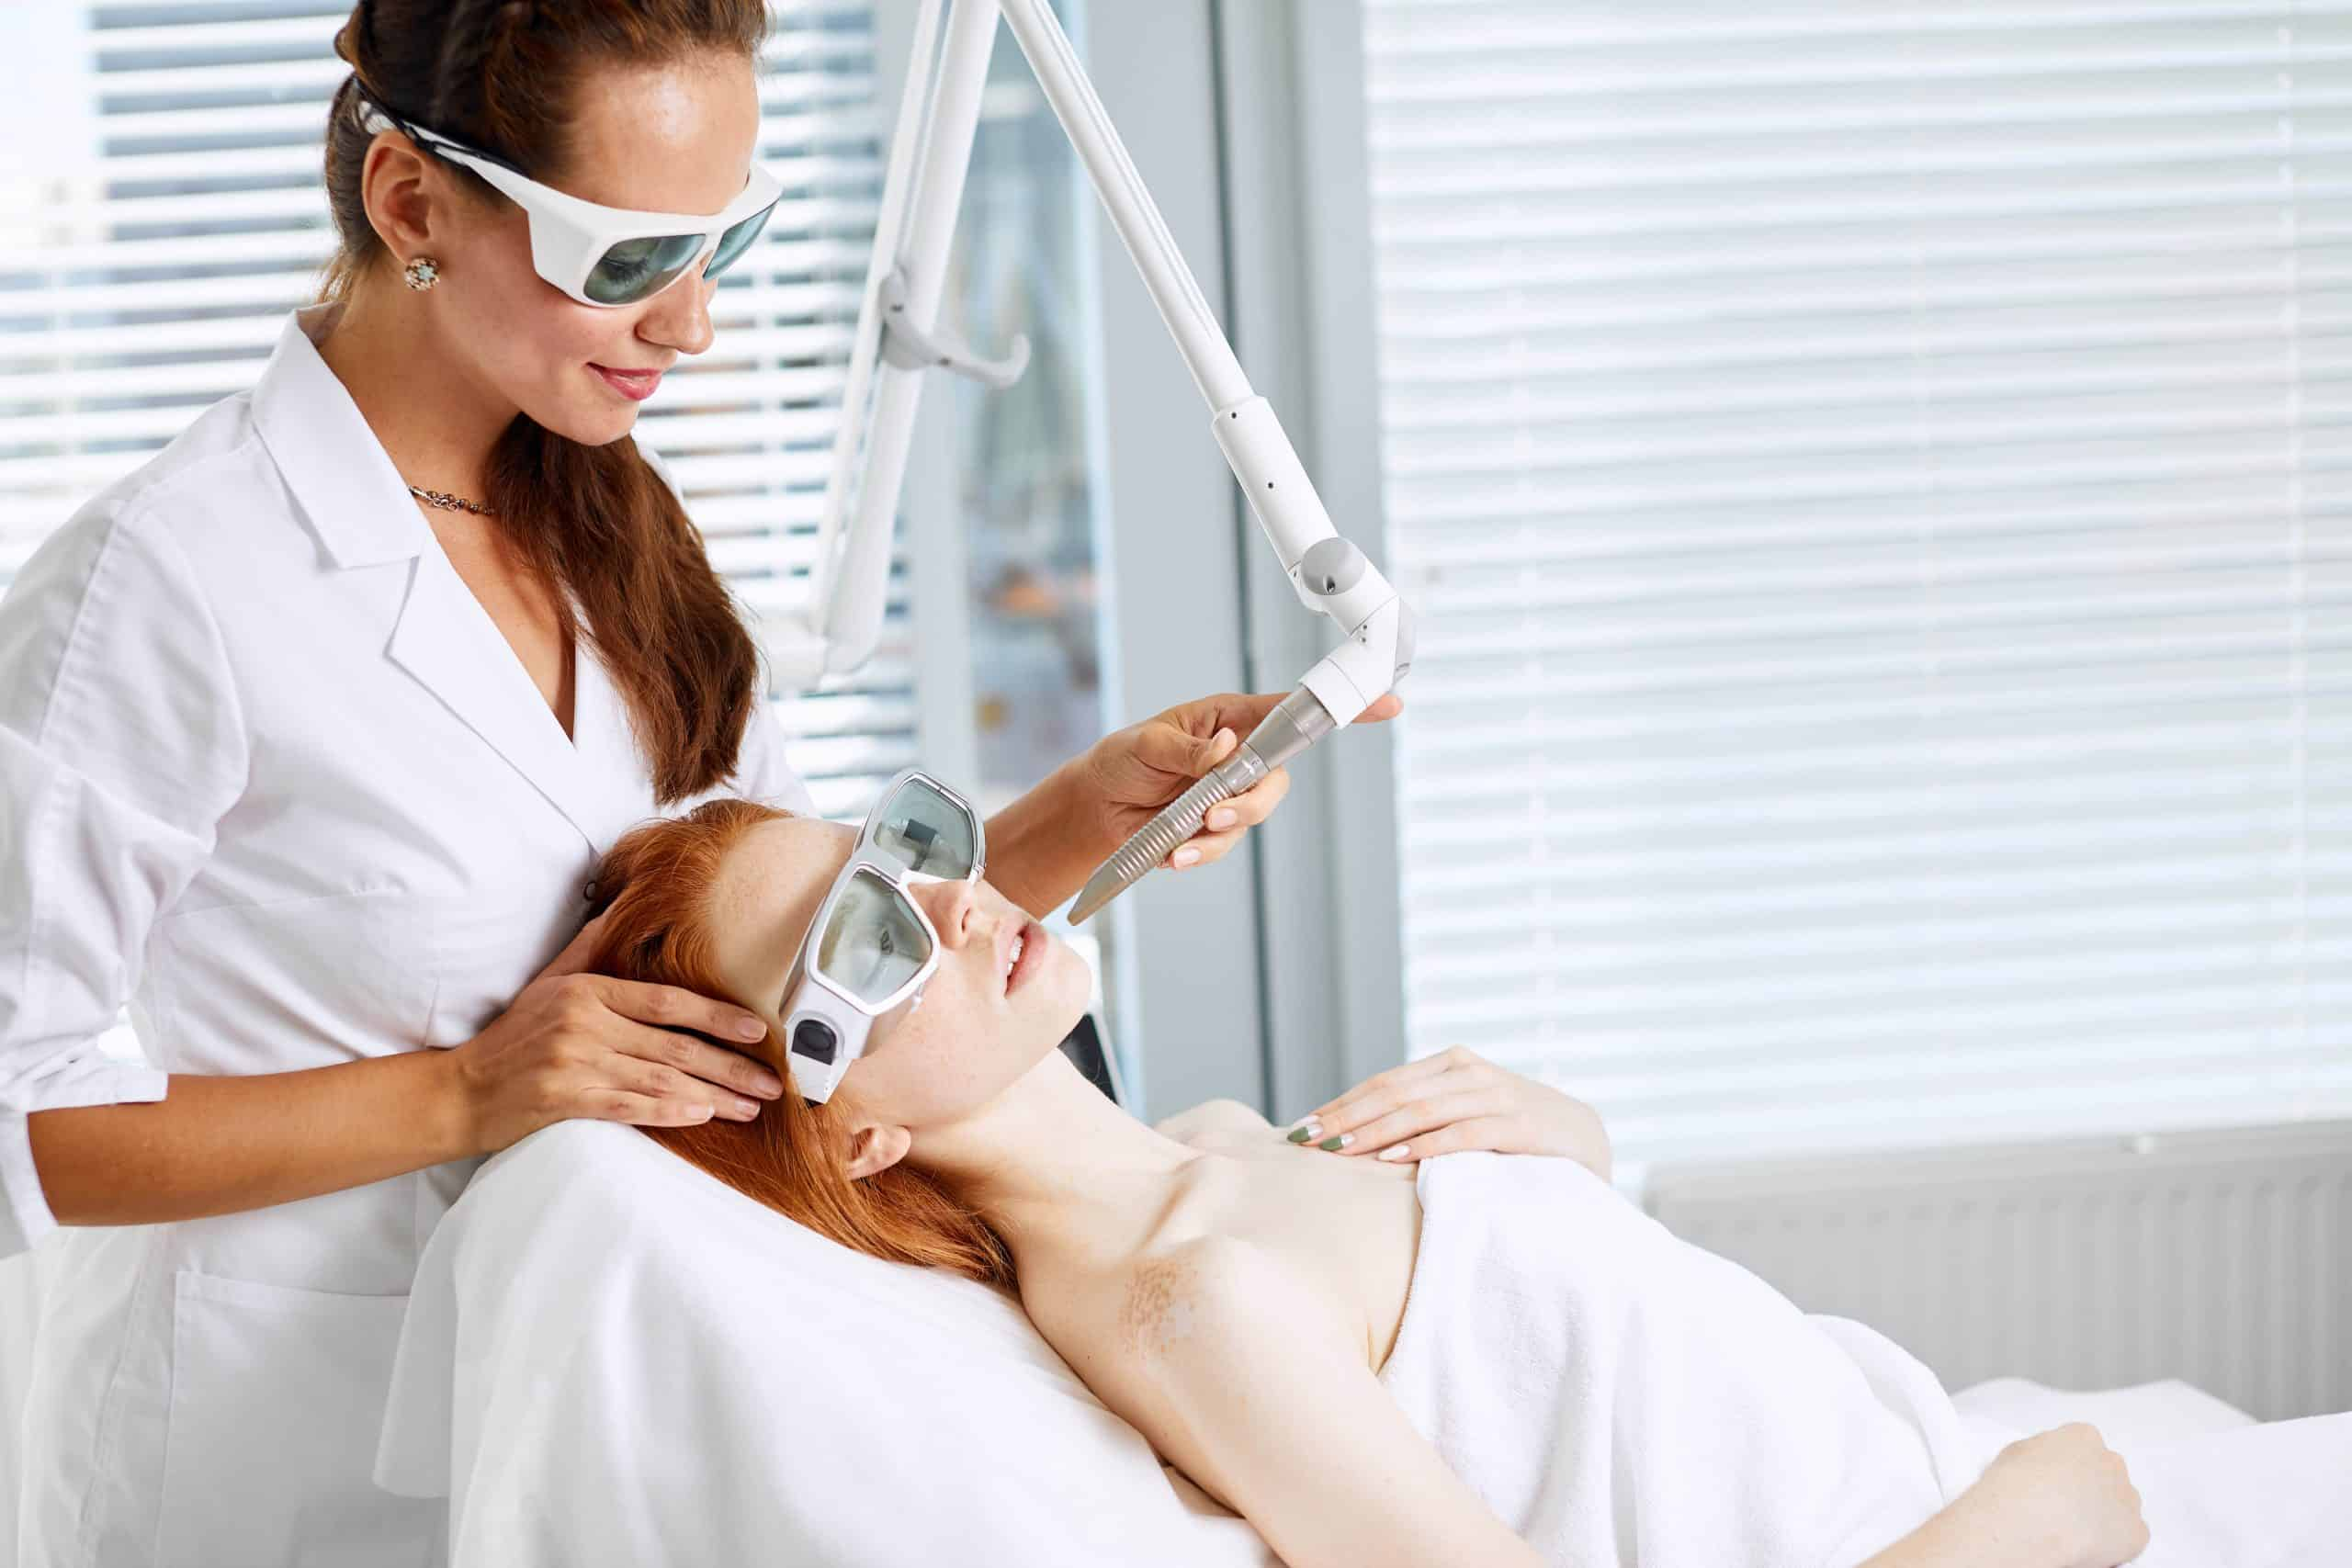 laser treatment - a good cosmetic treatment